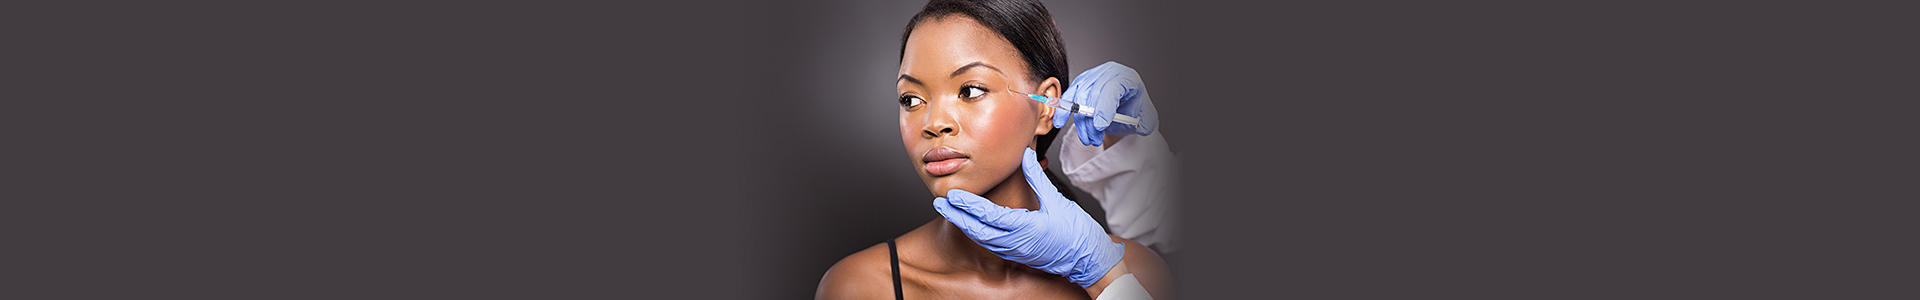 Botox Injections in South Florida and Miami Beach | Dr